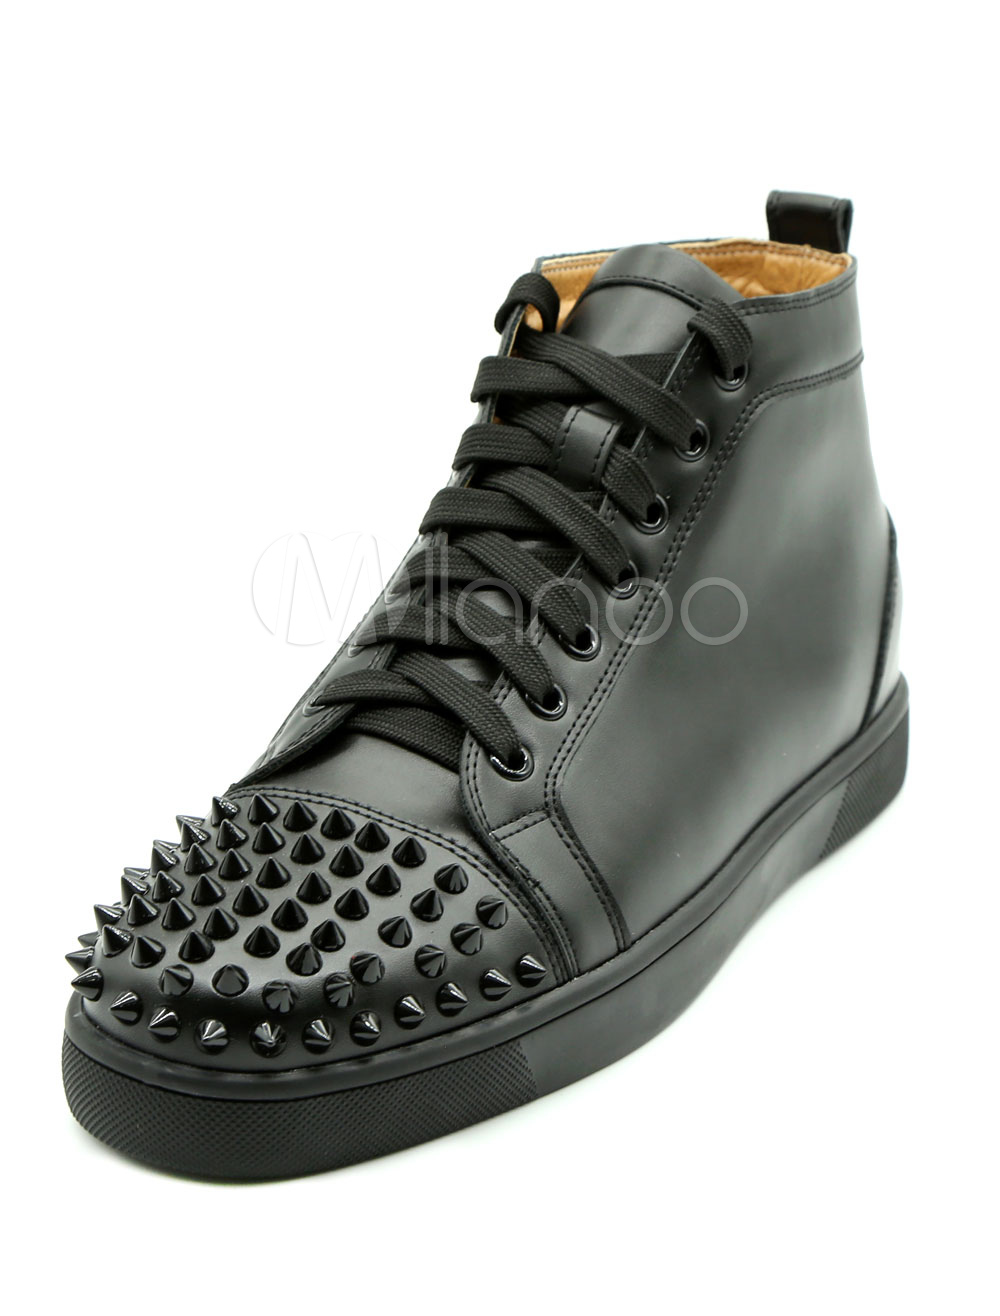 Buy Men's Black Sneakers Leather Round Toe Lace Up Rivets High Top Skate Shoes for $85.49 in Milanoo store